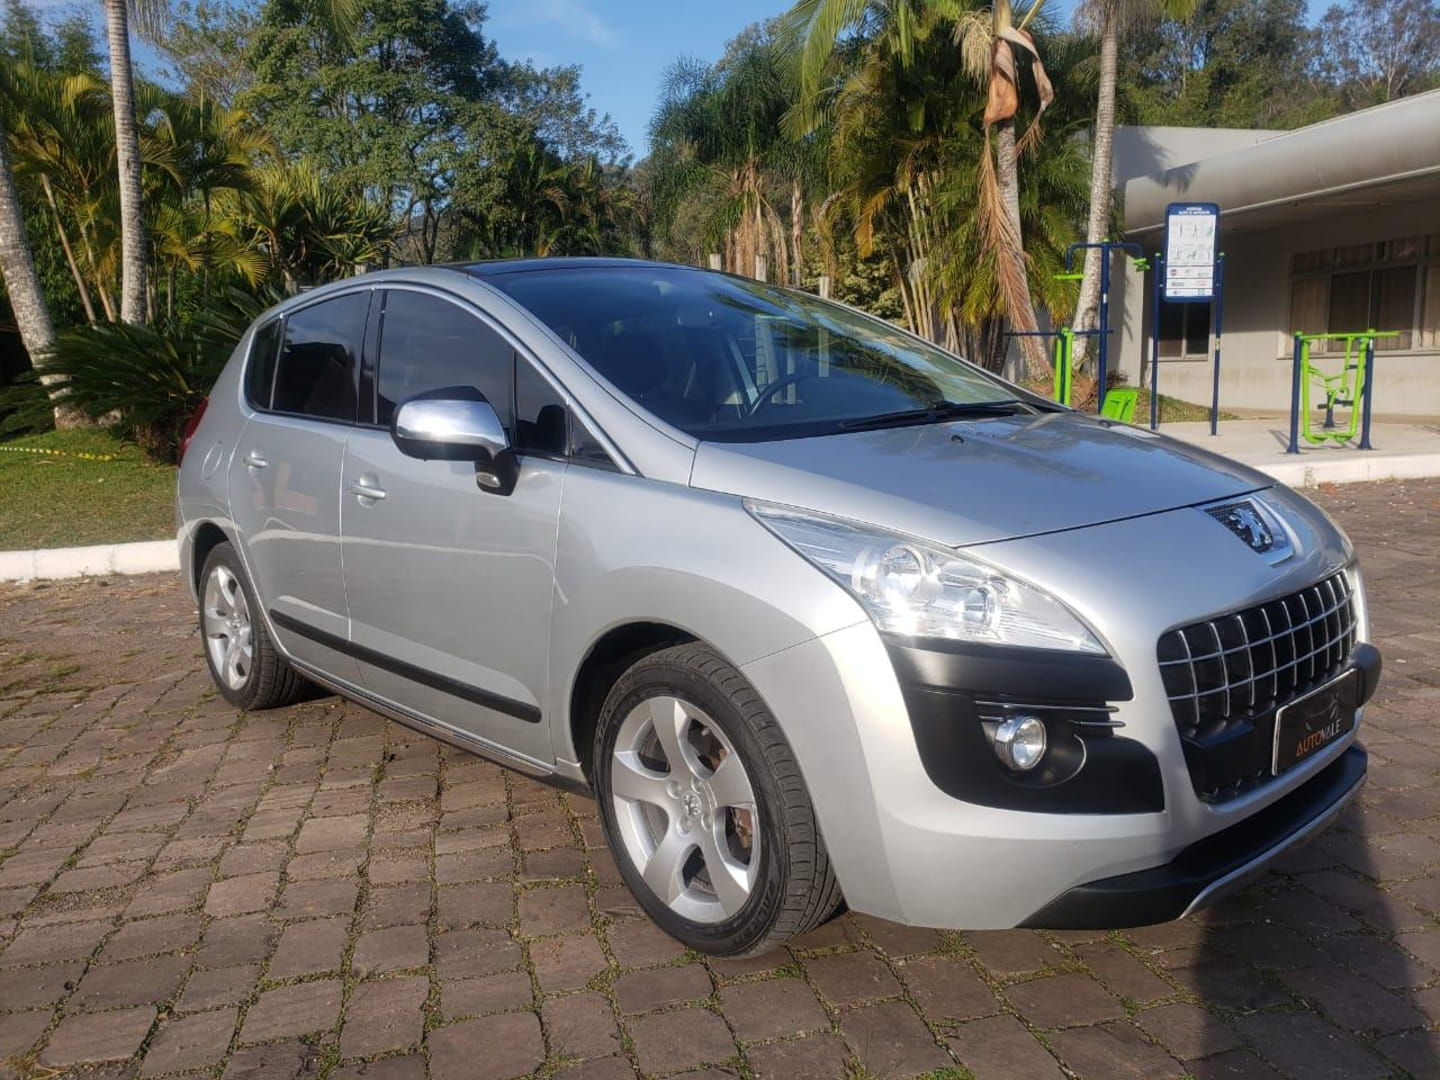 3008 griffe pack 1.6 turbo 16v 2011 vale real